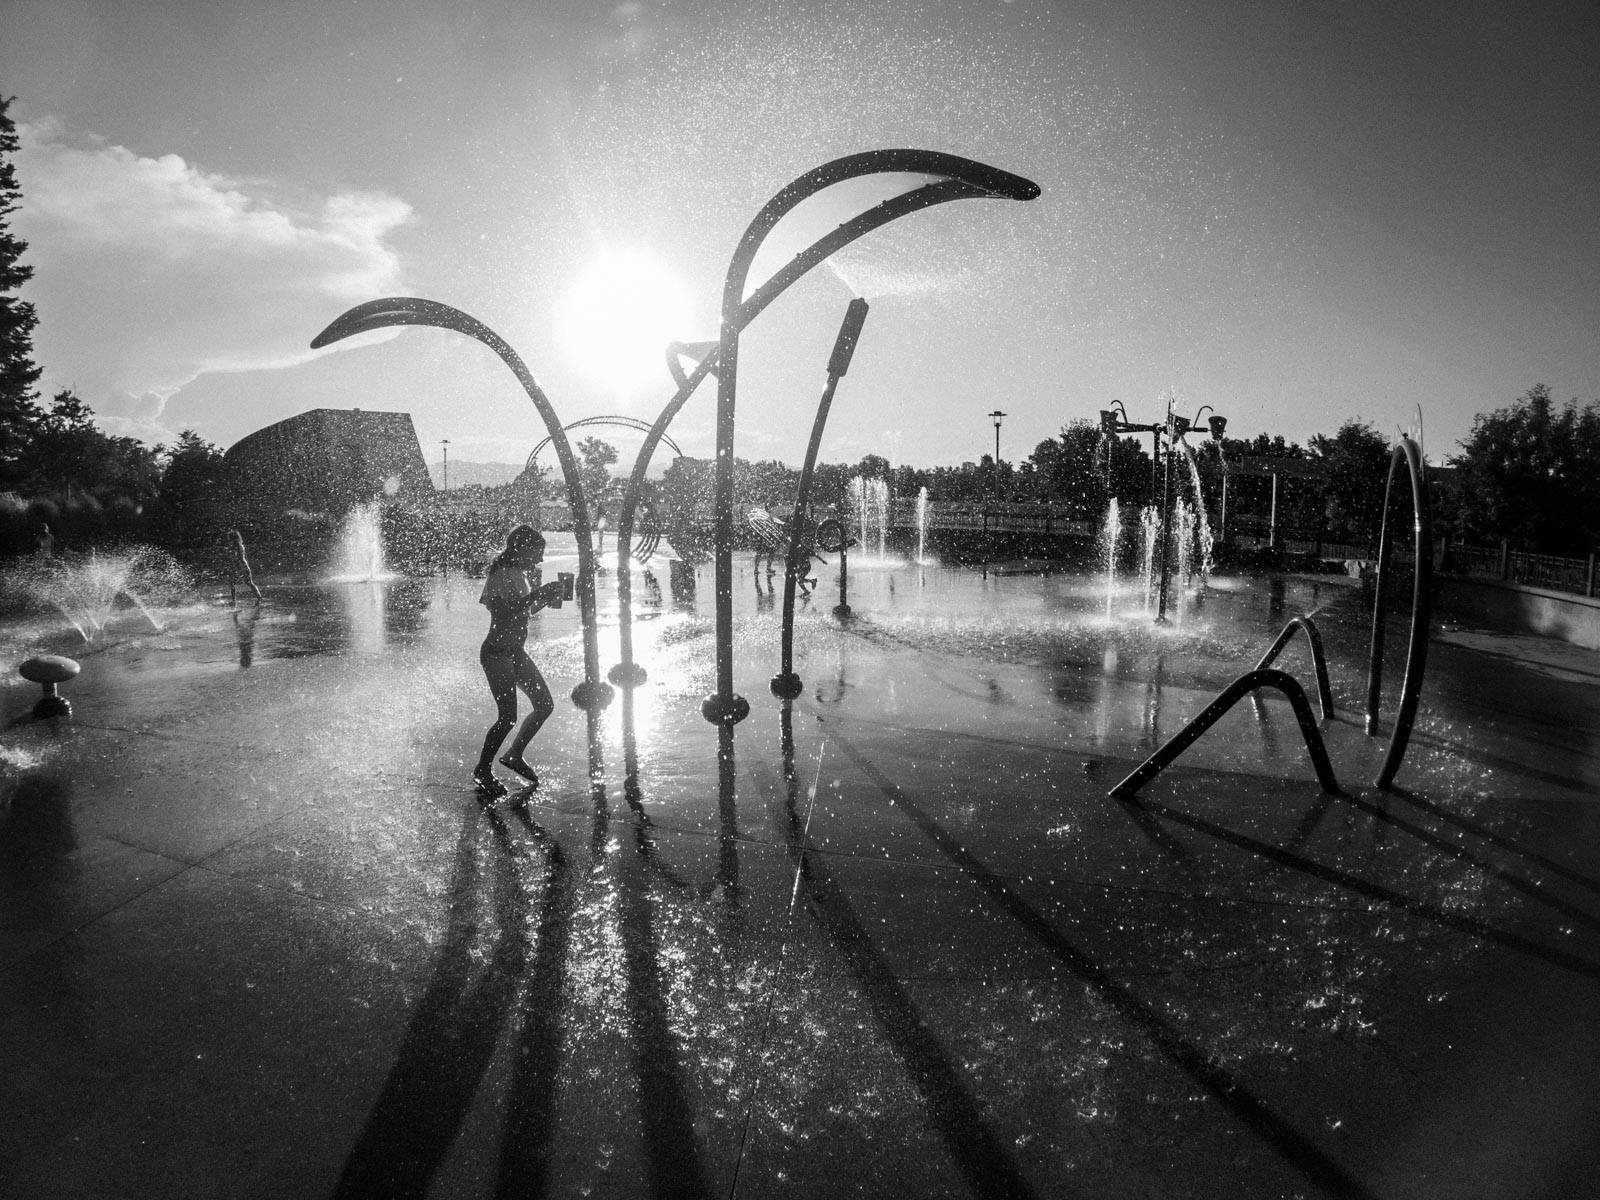 Summer black and white photo of child playing at splash pad